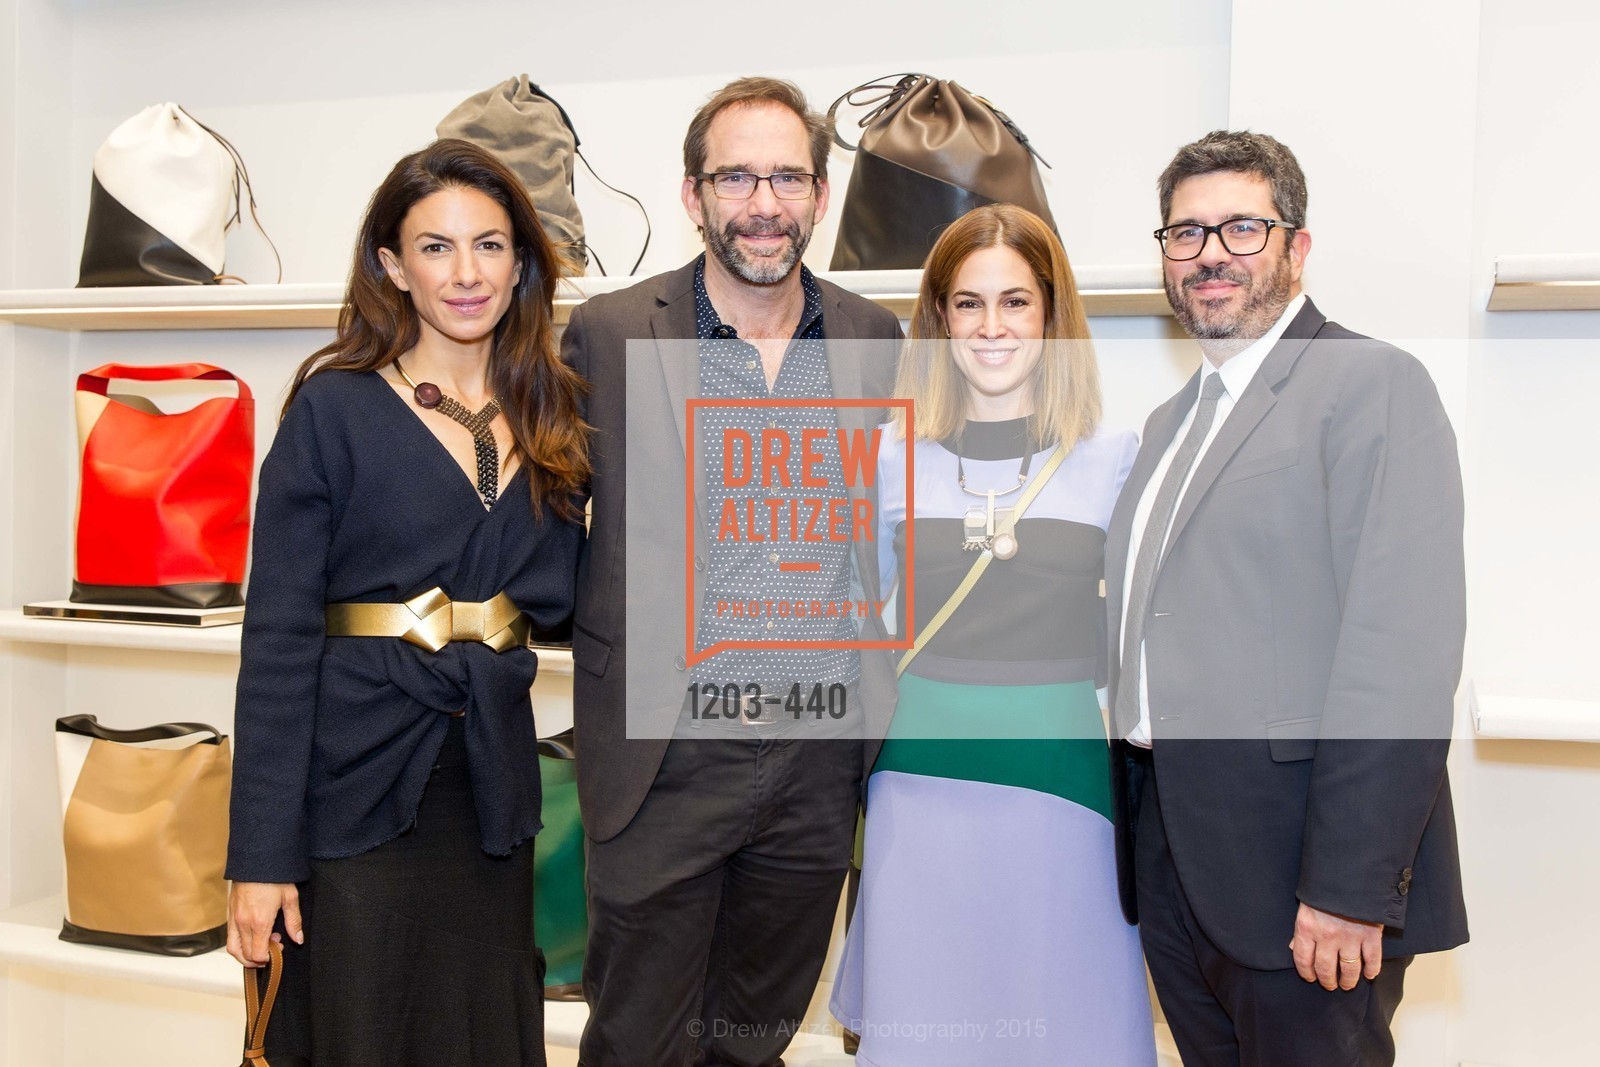 Sabrina Buell, Allison Pincus, Andrea Baldo, W Magazine and BAMPFA Celebrate the Opening of the Marni San Francisco Boutique with co-hosts Sabrina Buell and Alison Pincus, Marni San Francisco. 77 Maiden Lane, November 4th, 2015,Drew Altizer, Drew Altizer Photography, full-service agency, private events, San Francisco photographer, photographer california